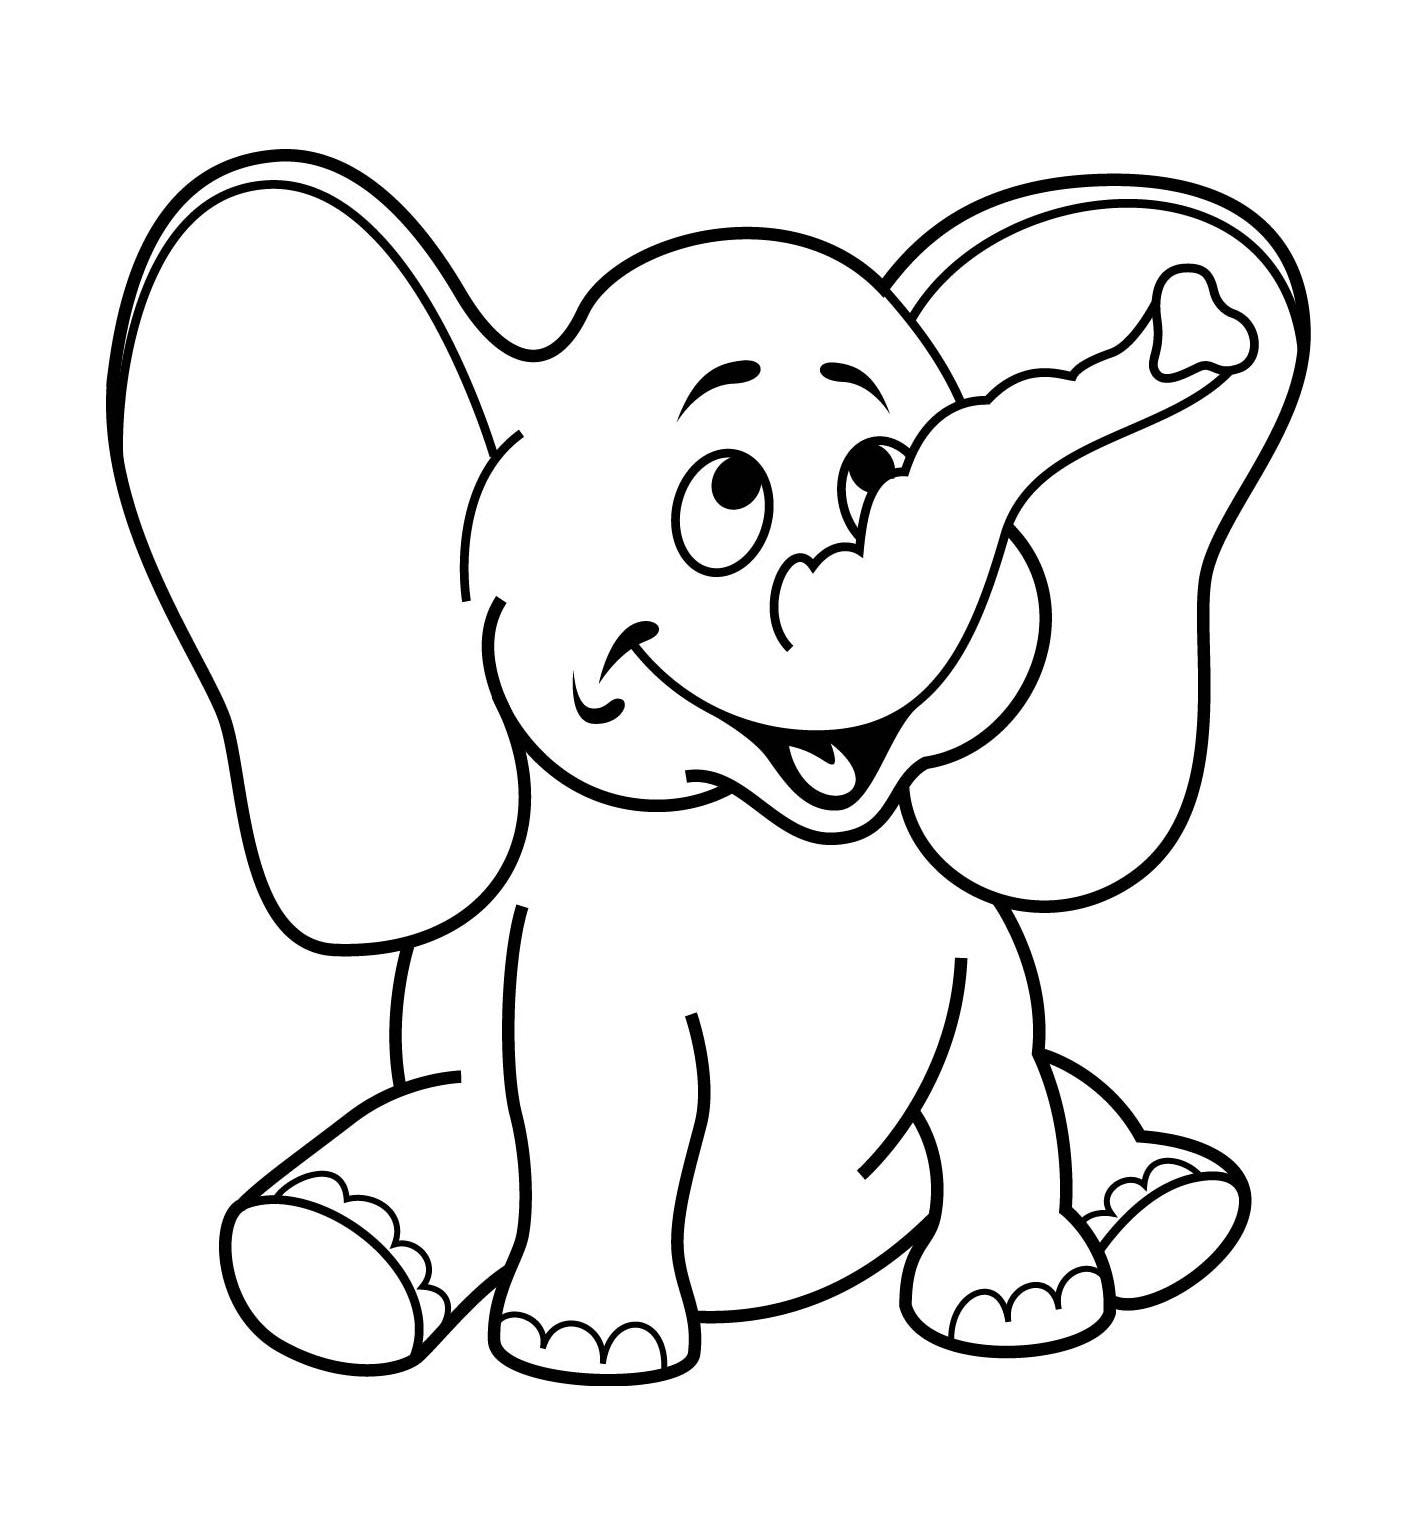 three girls coloring page coloring pages for girls 9 10 free download on clipartmag girls page three coloring